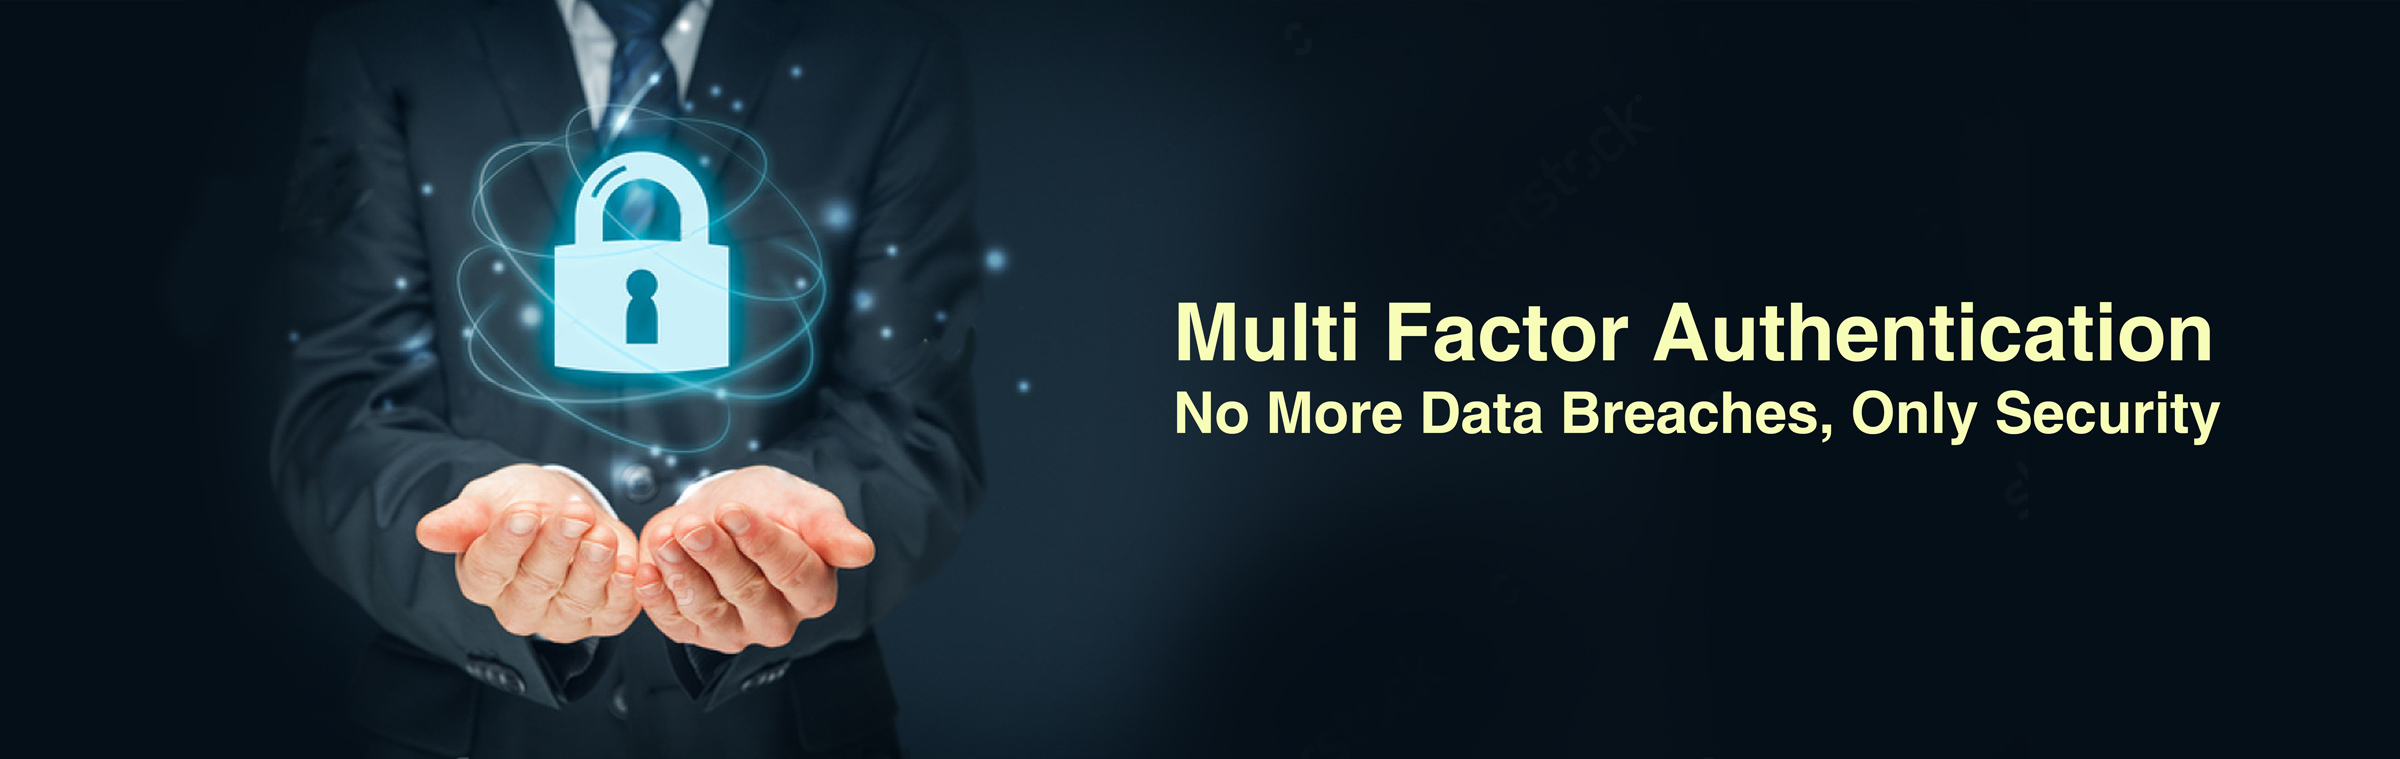 Multi Factor Authentication – No More Data Breaches, Only Security